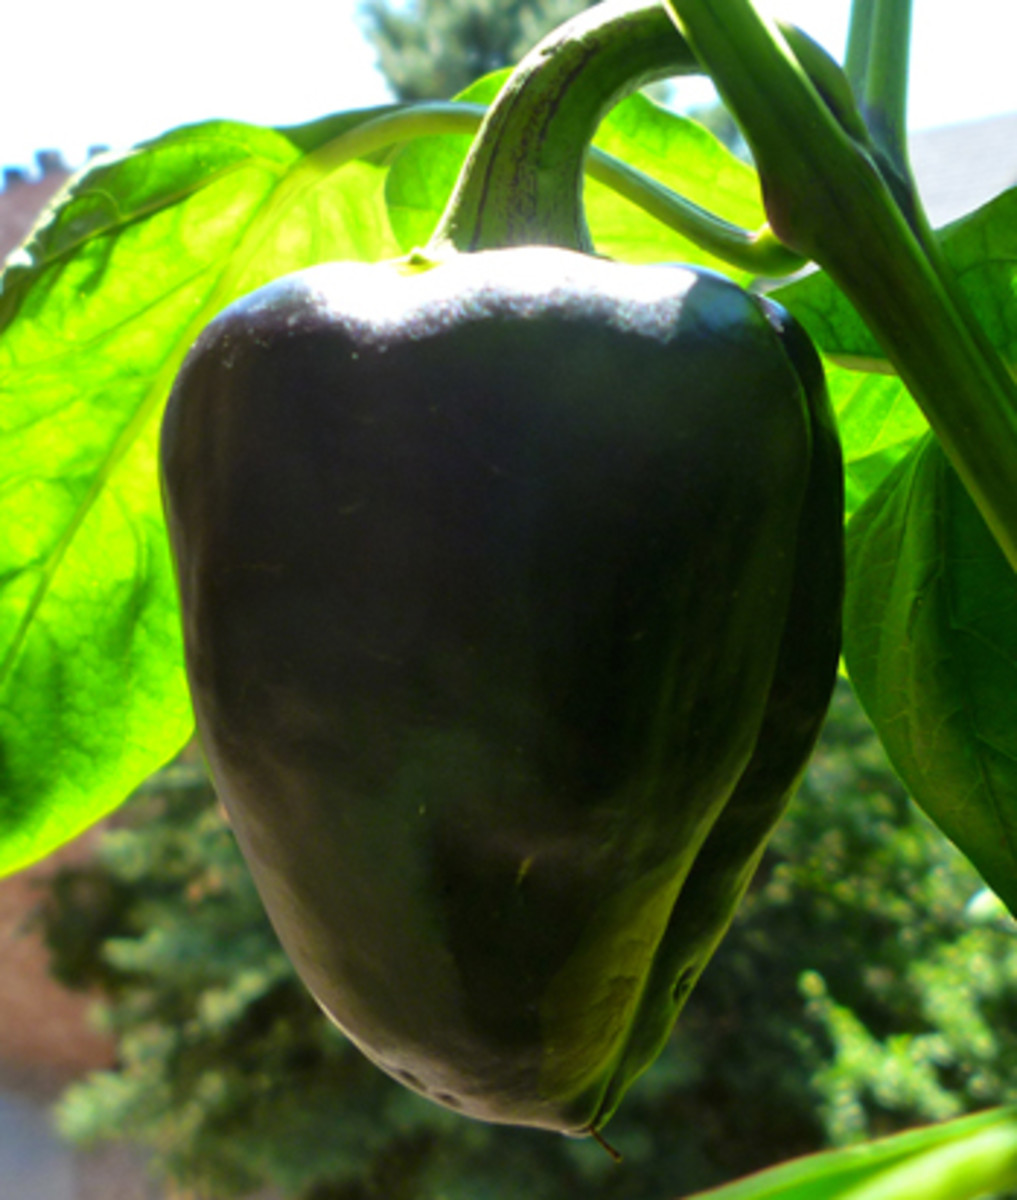 Ripe Purple Beauty bell peppers will turn a deep red color. This particular pepper is about 10-20 days away from totally ripening.